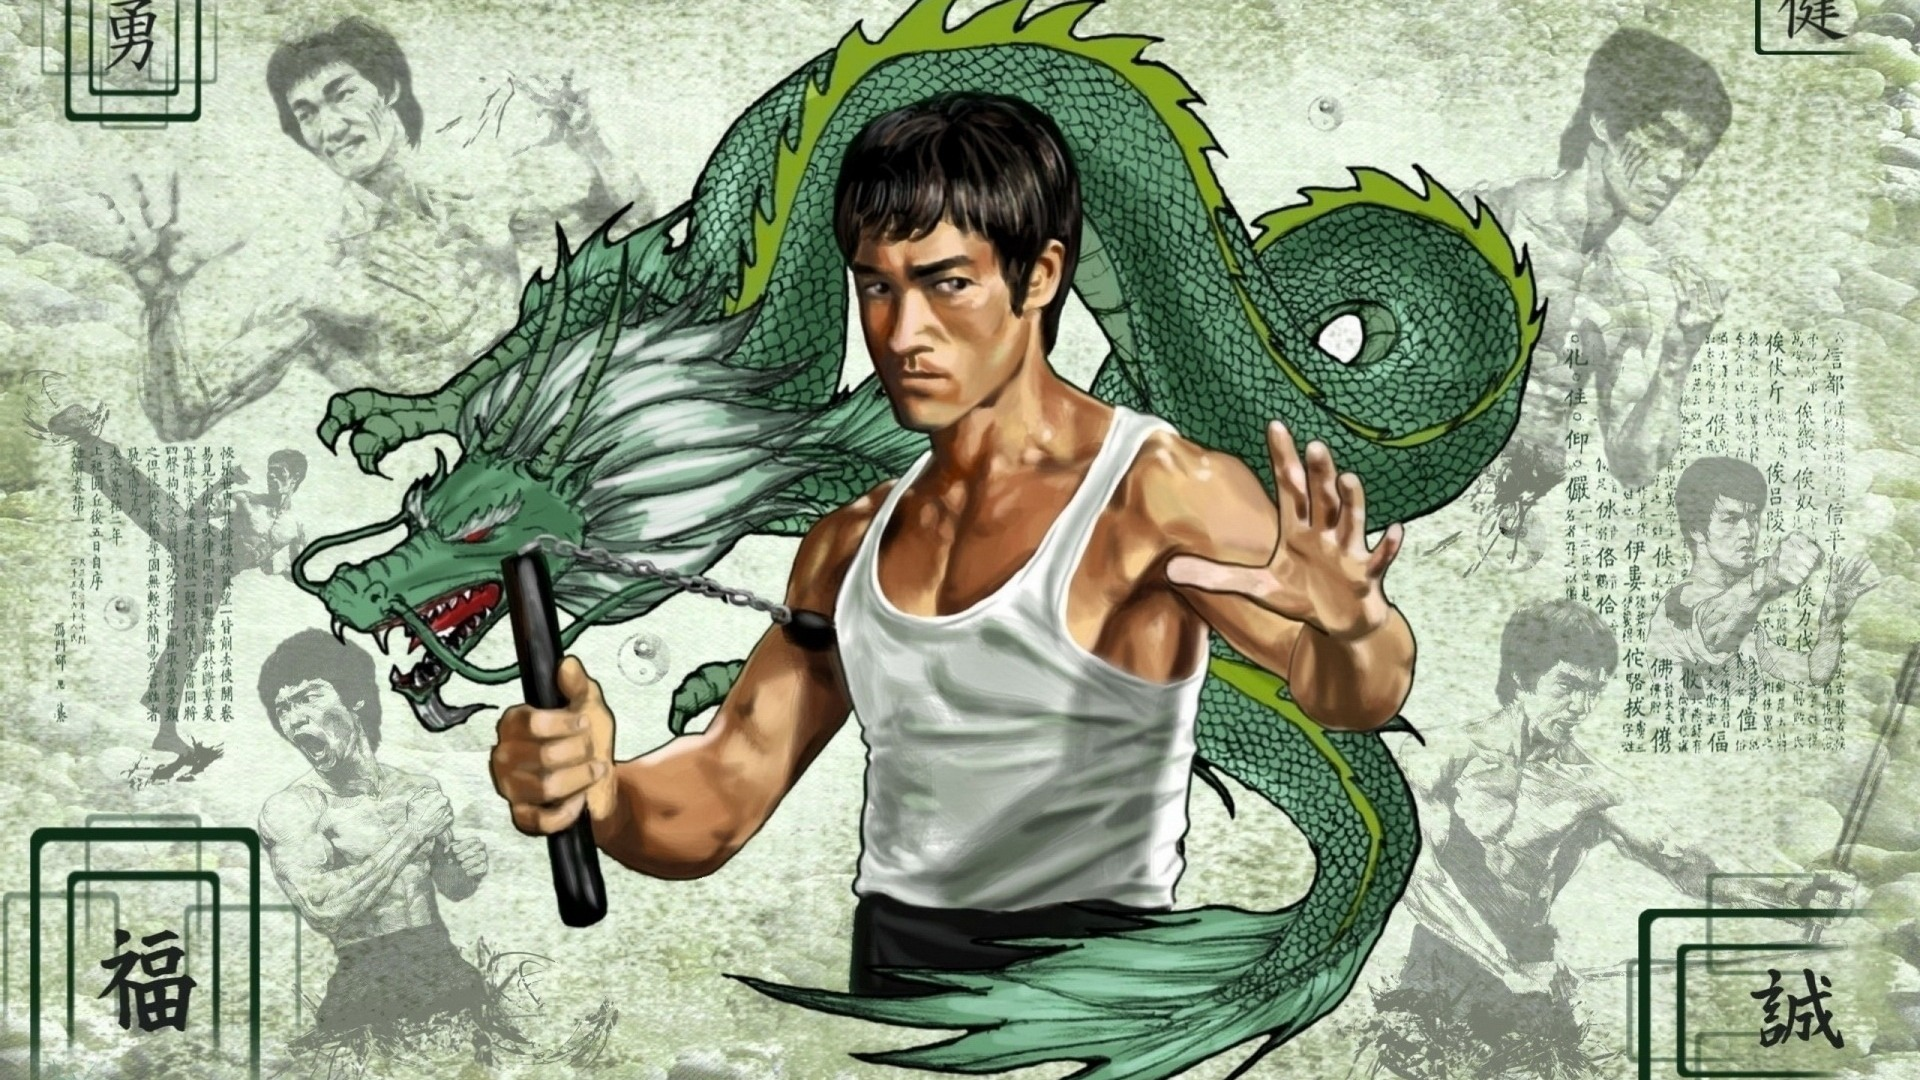 Bruce Lee Digital Art Wallpaper 1920x1080